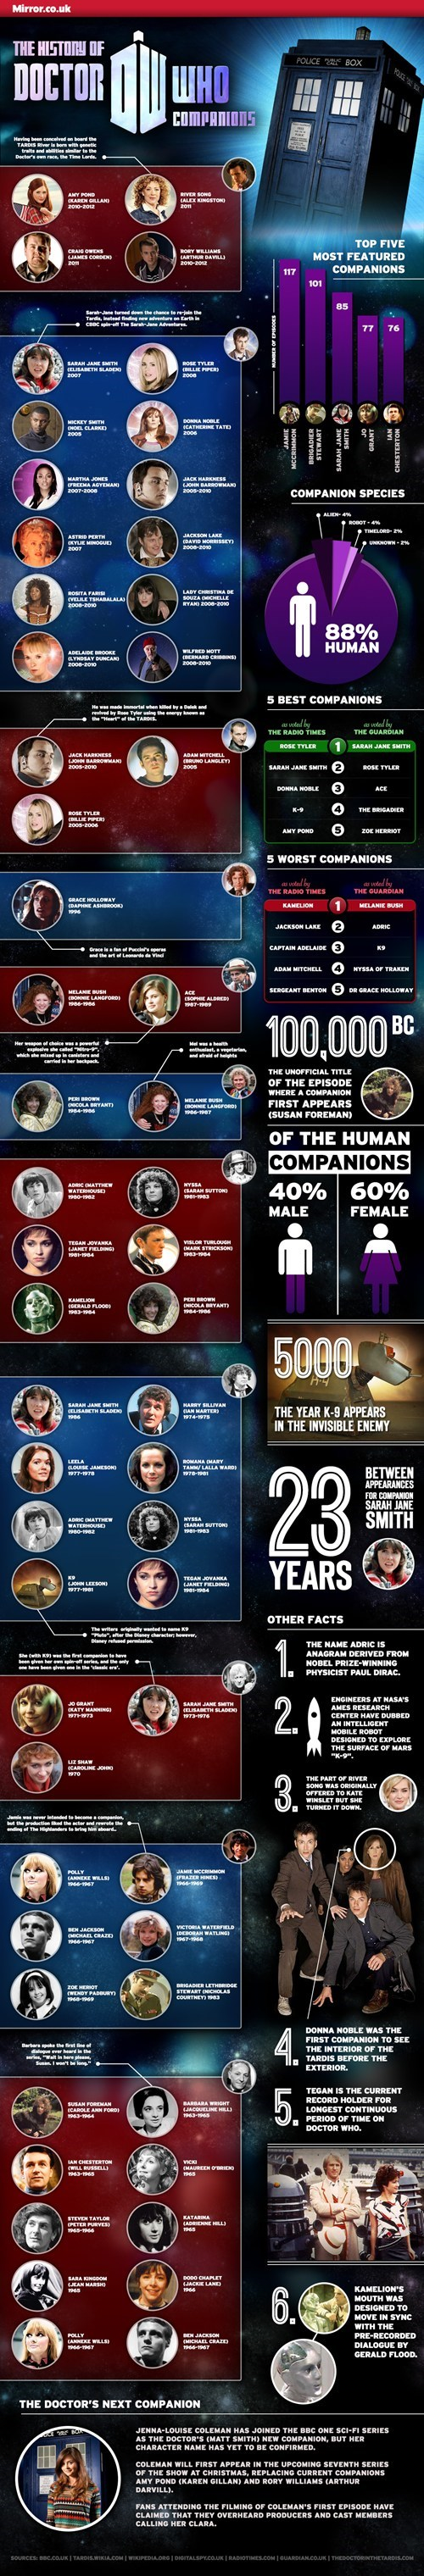 Ultimate Doctor Who Companion Infographic of the Day